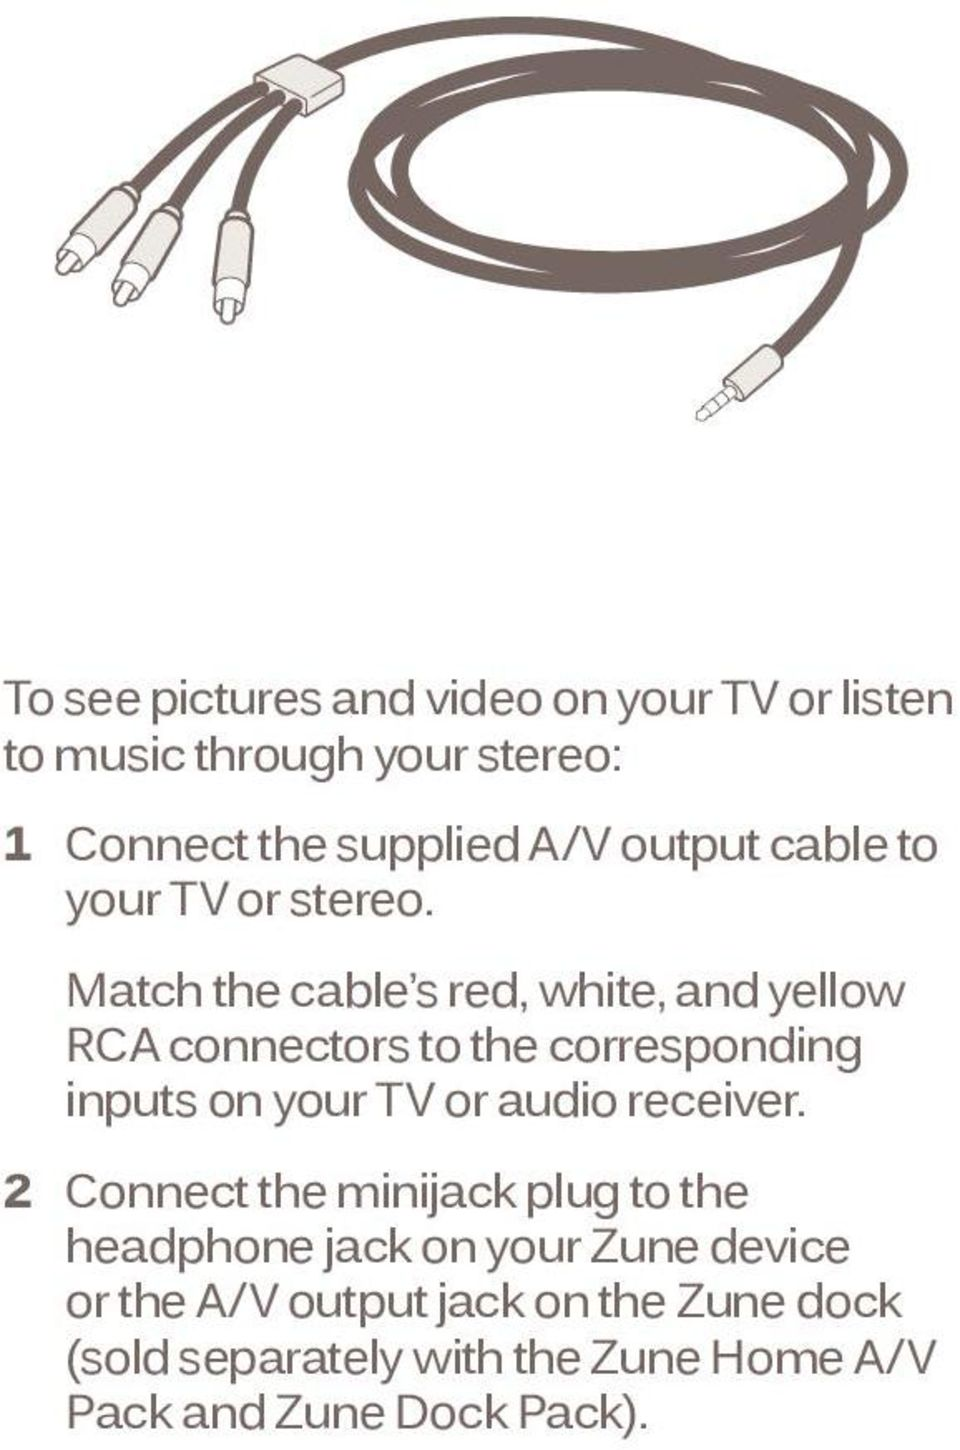 Match the cable s red, white, and yellow RCA connectors to the corresponding inputs on your TV or audio